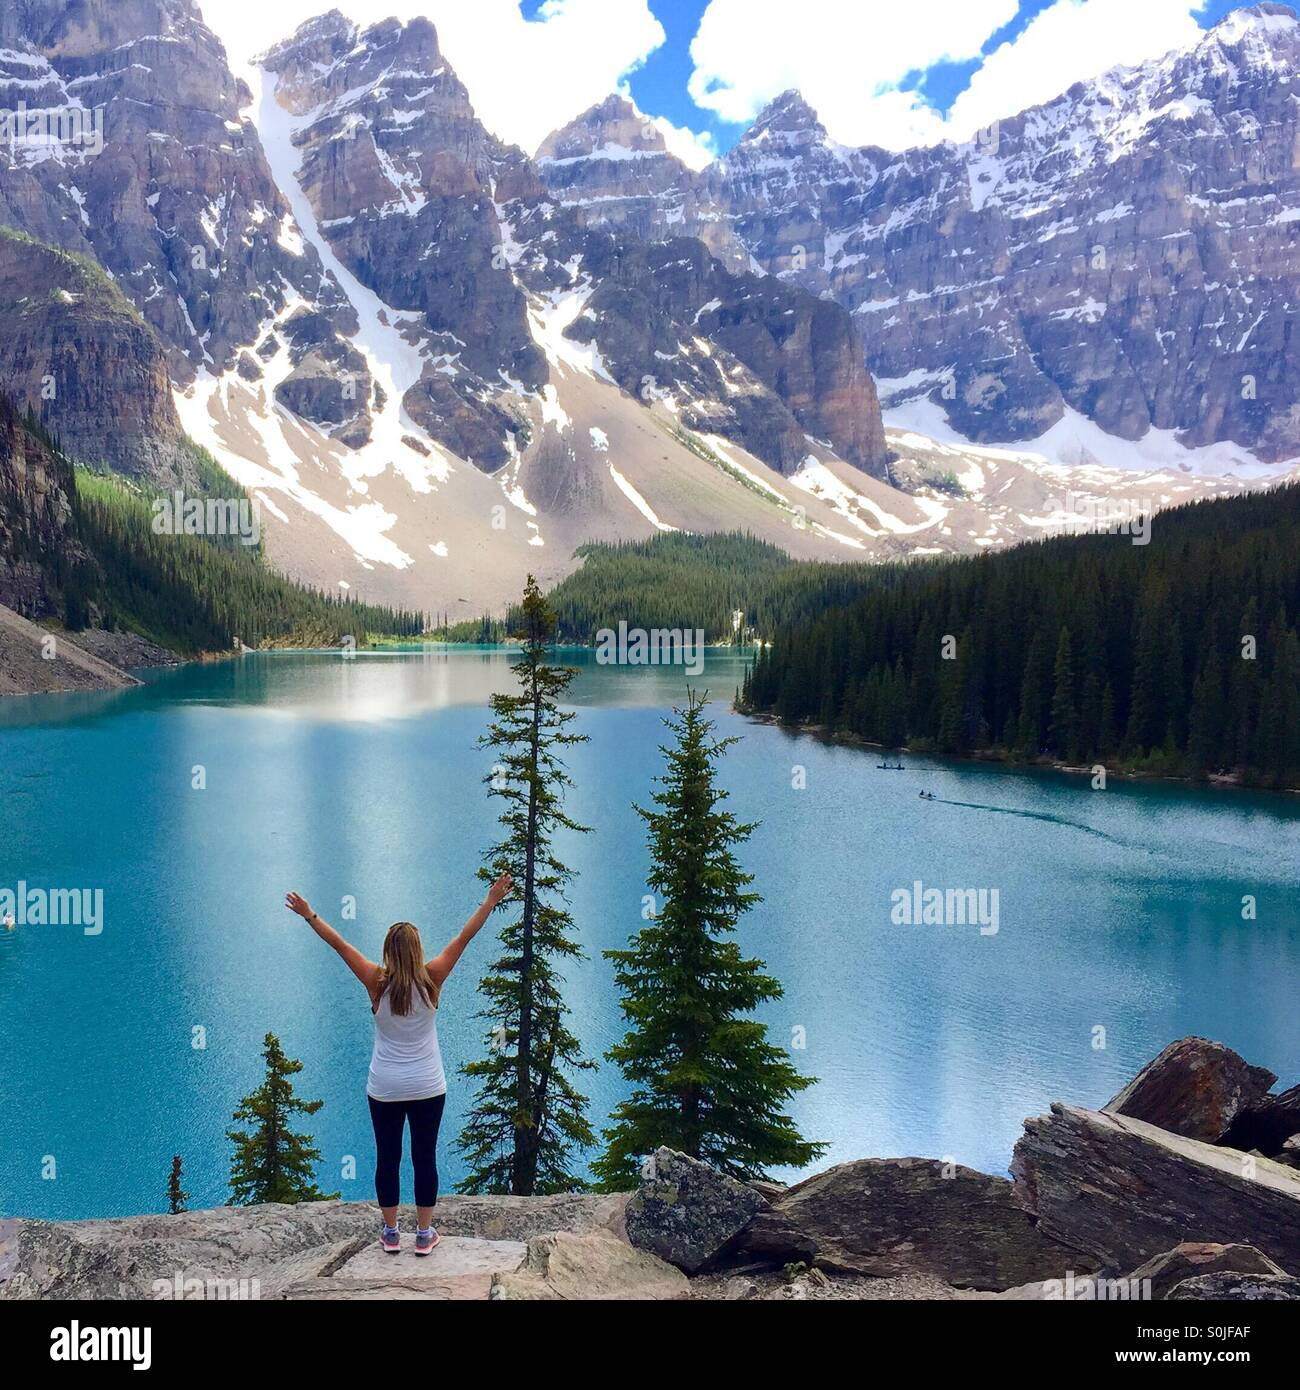 A women standing with her arms above her head overlooking moraine lake in alberta canada - Stock Image